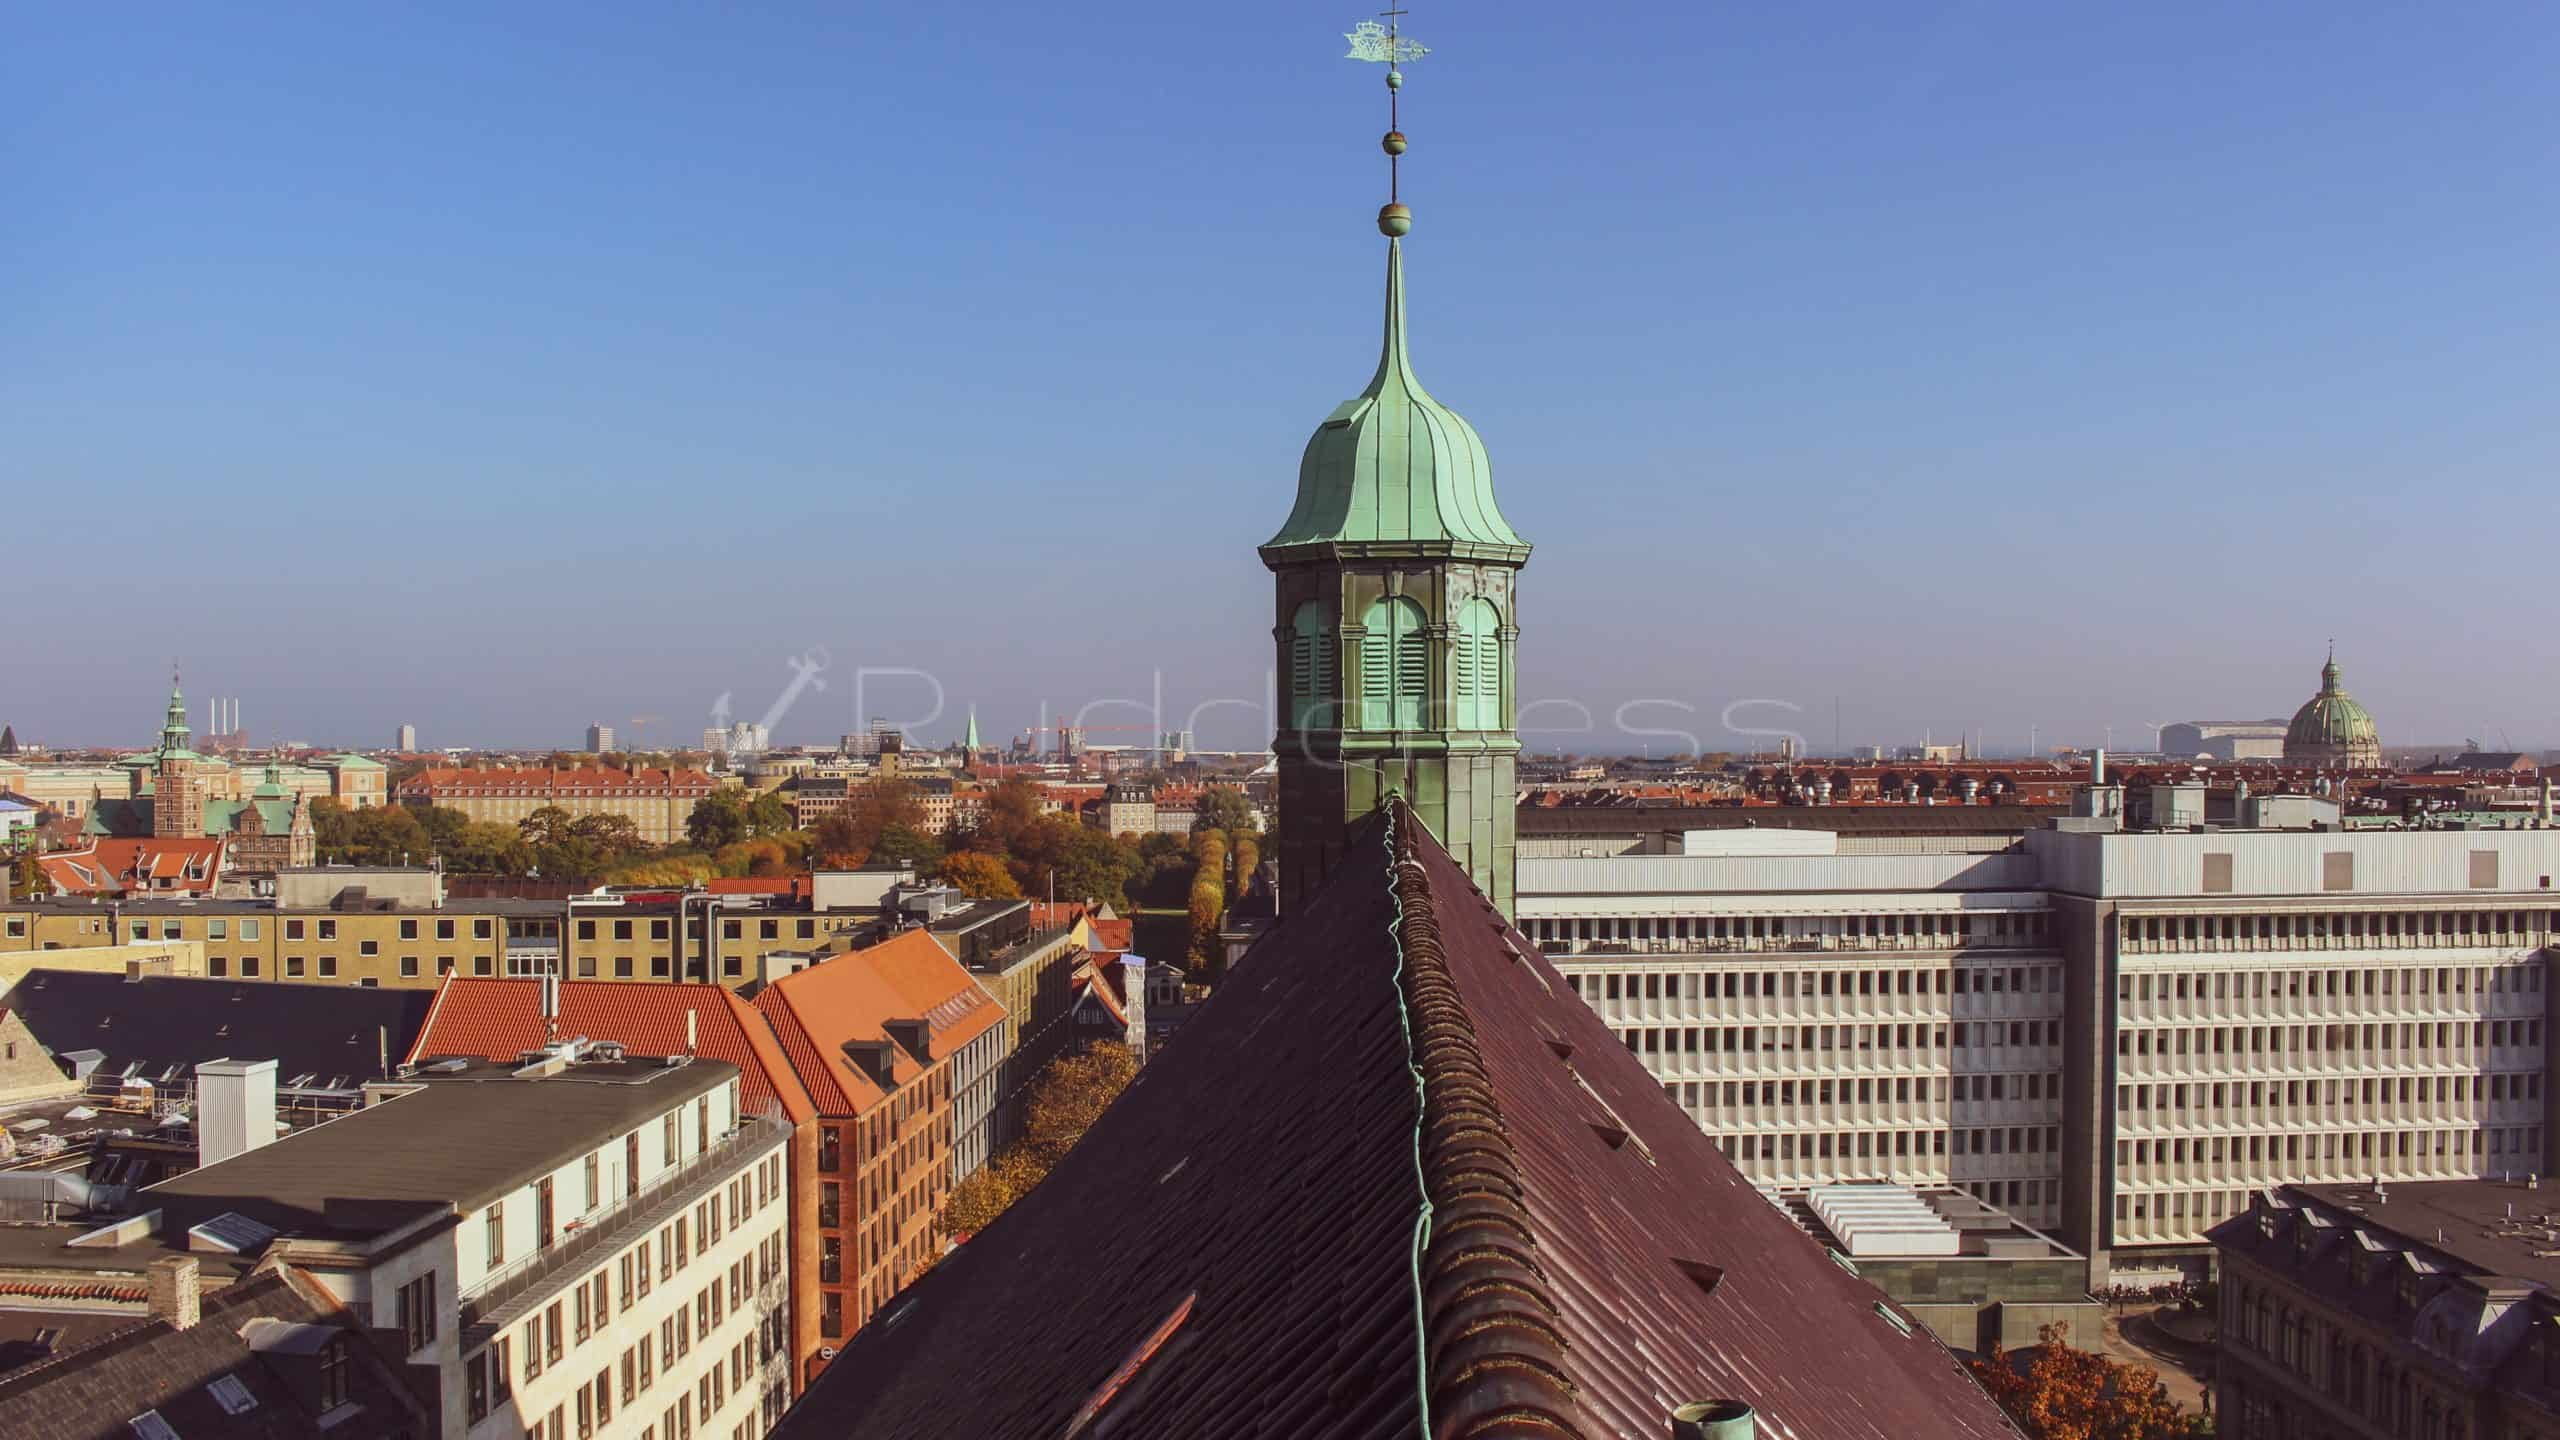 The Rundetaarn - The Round Tower - copenhagen landmarks